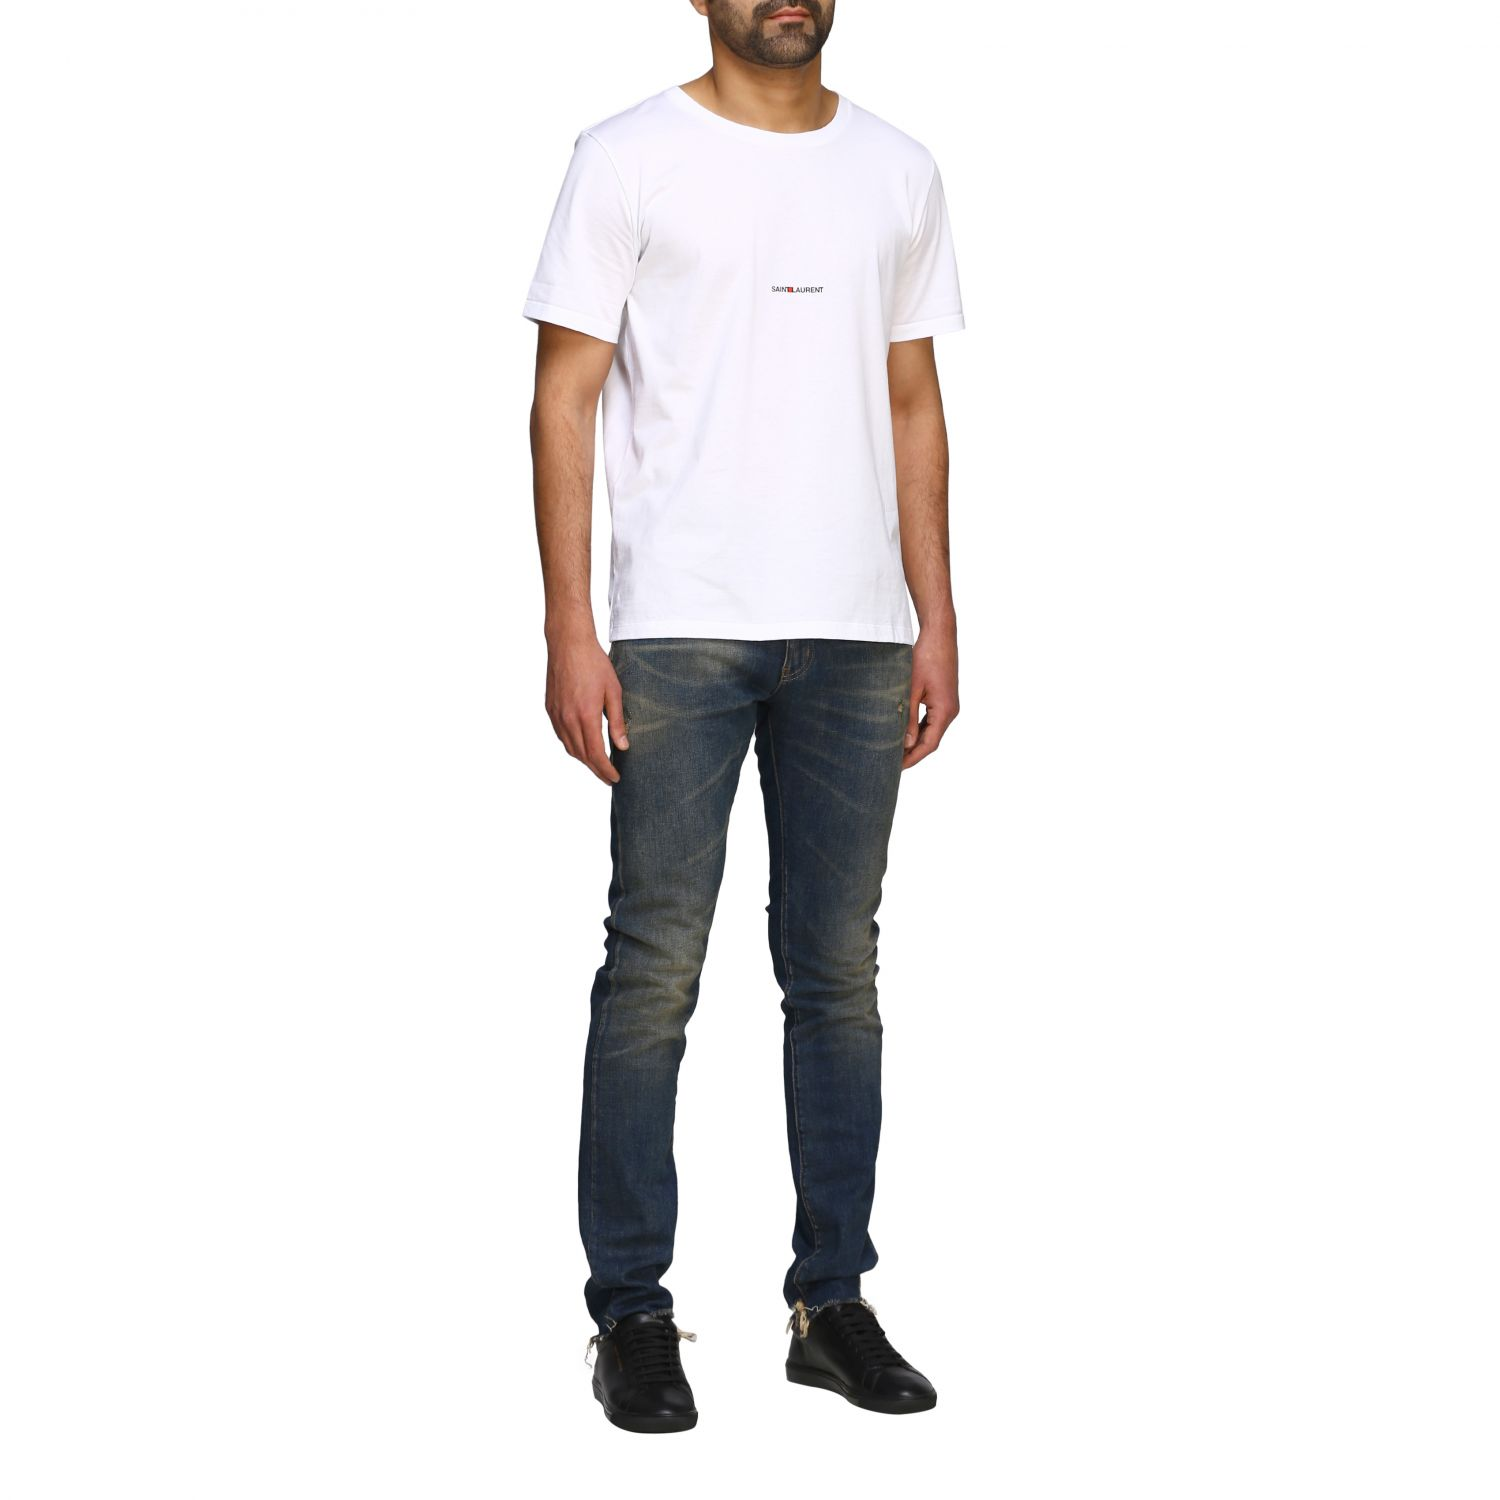 Saint Laurent T-Shirt mit Mini Logo weiß 2